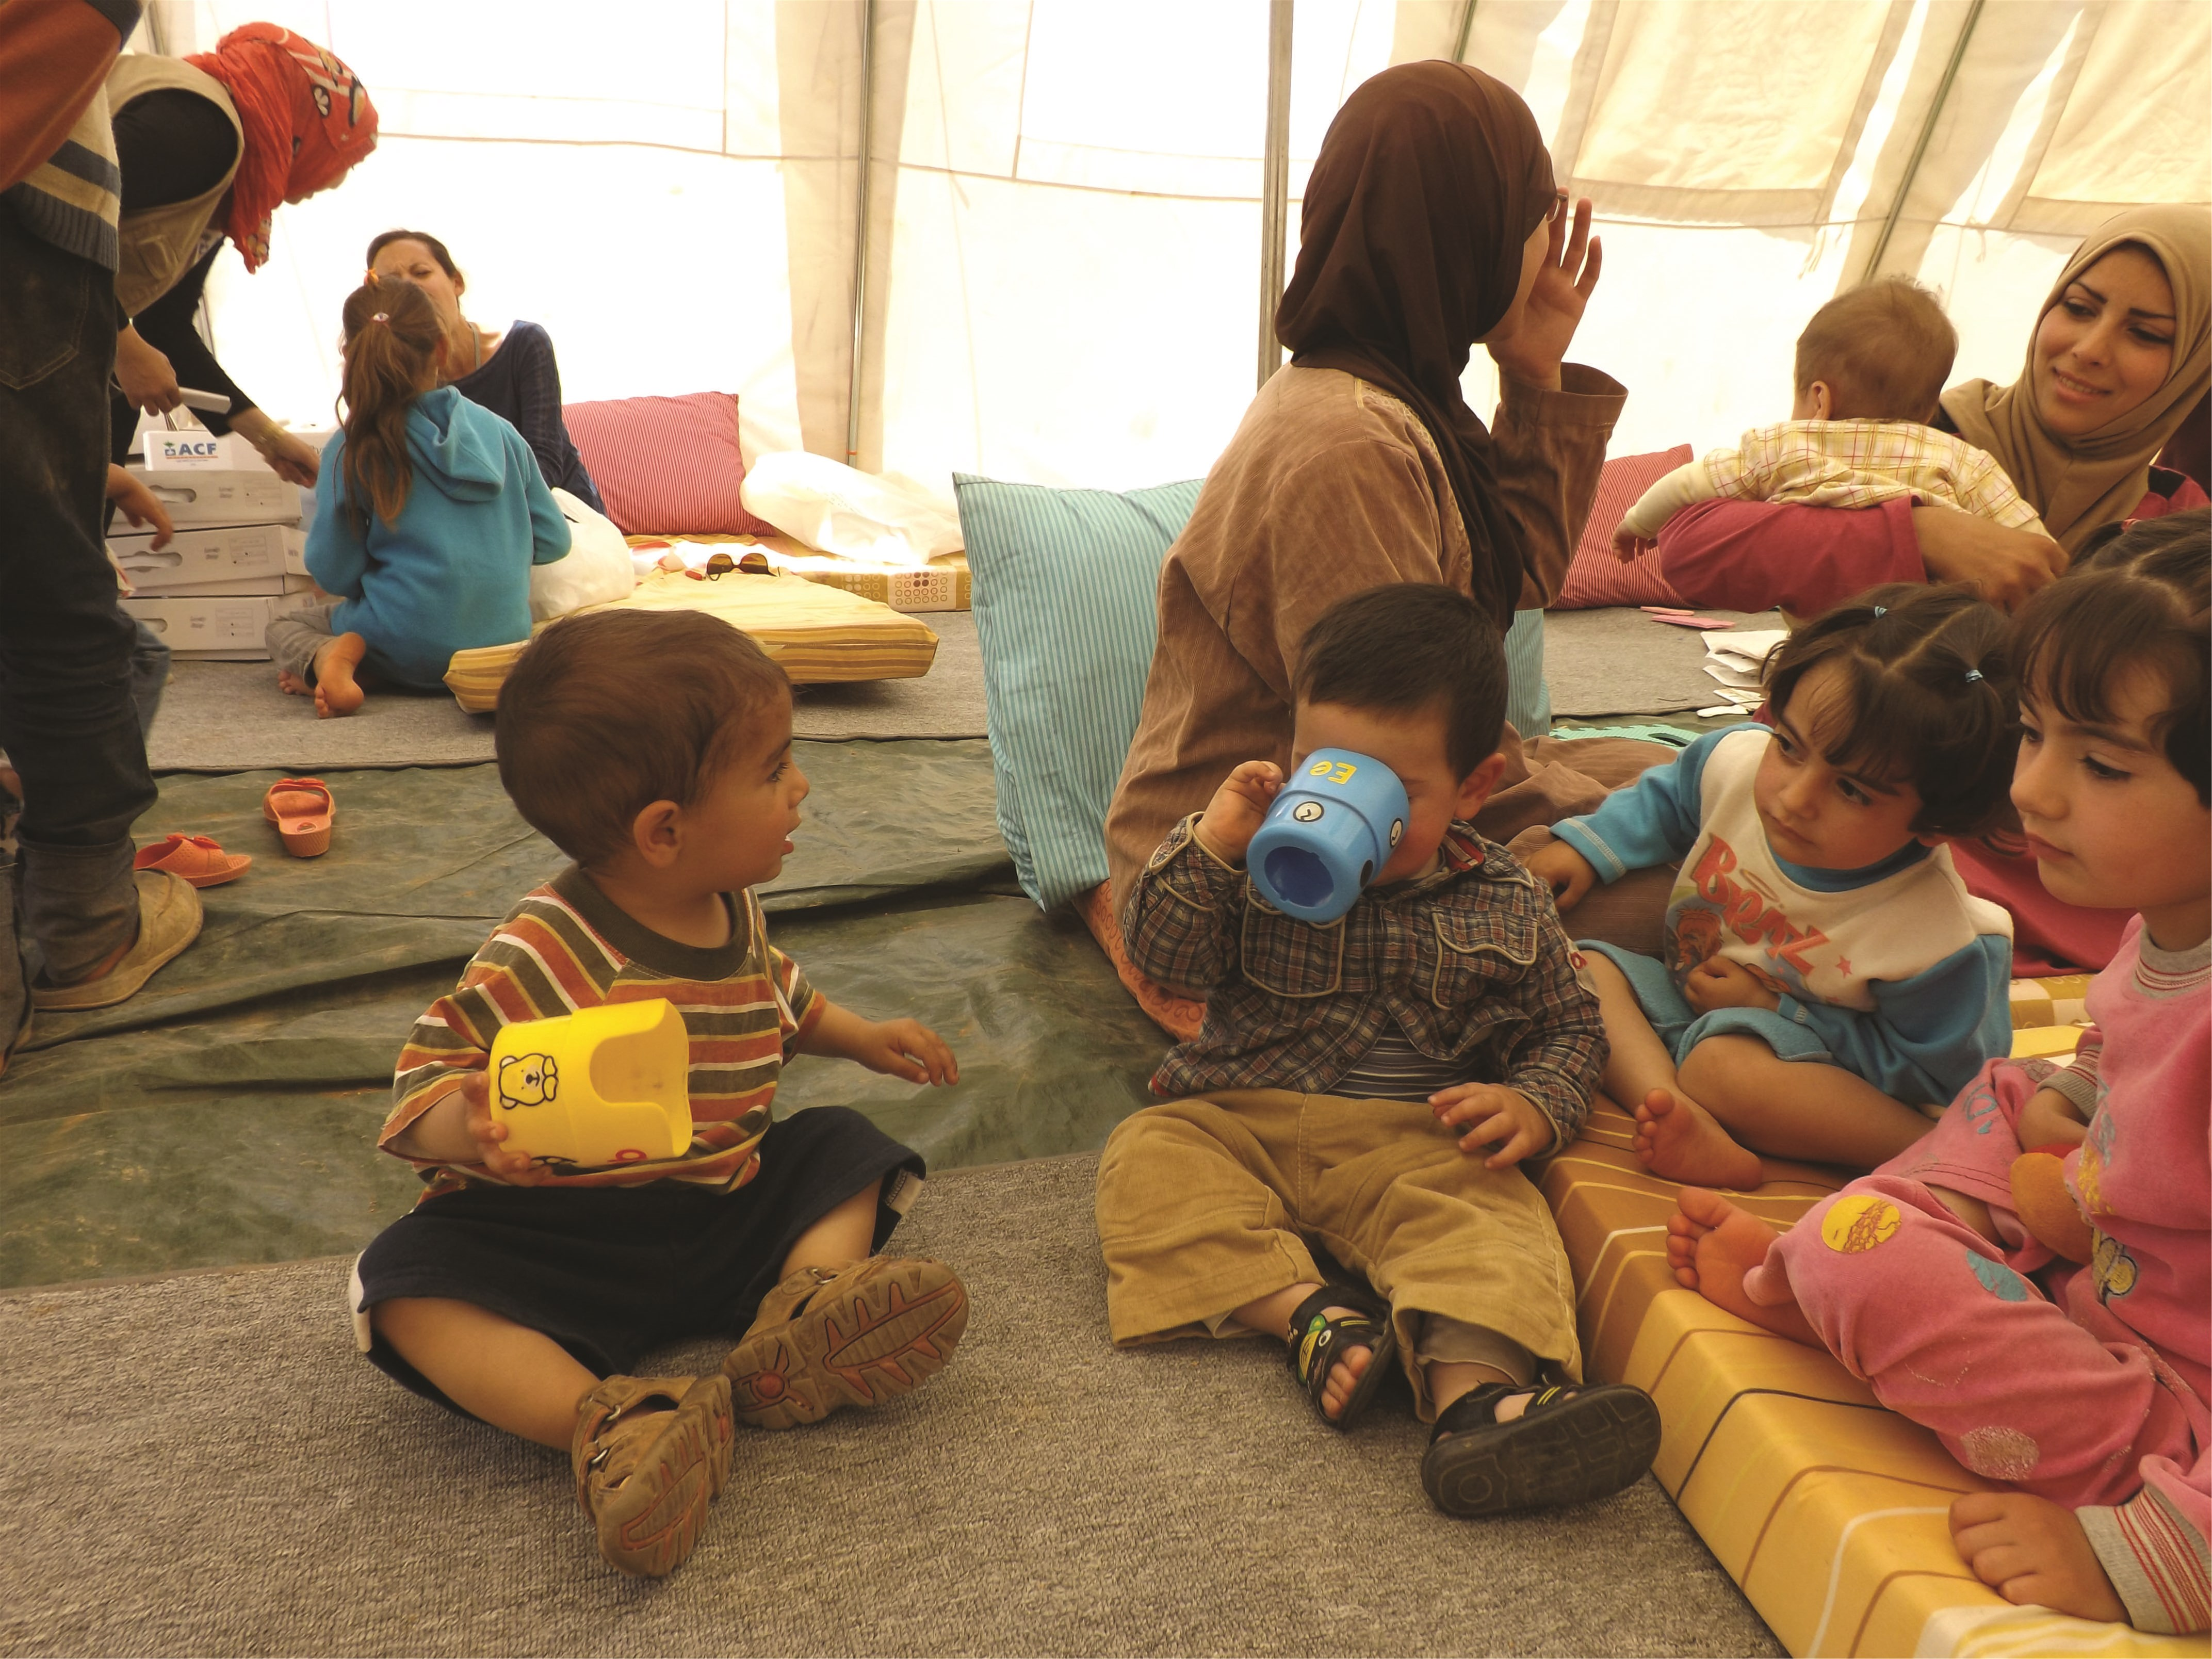 Syrian children enrolled in the ACF 'Safe Haven' Project in Lebanon